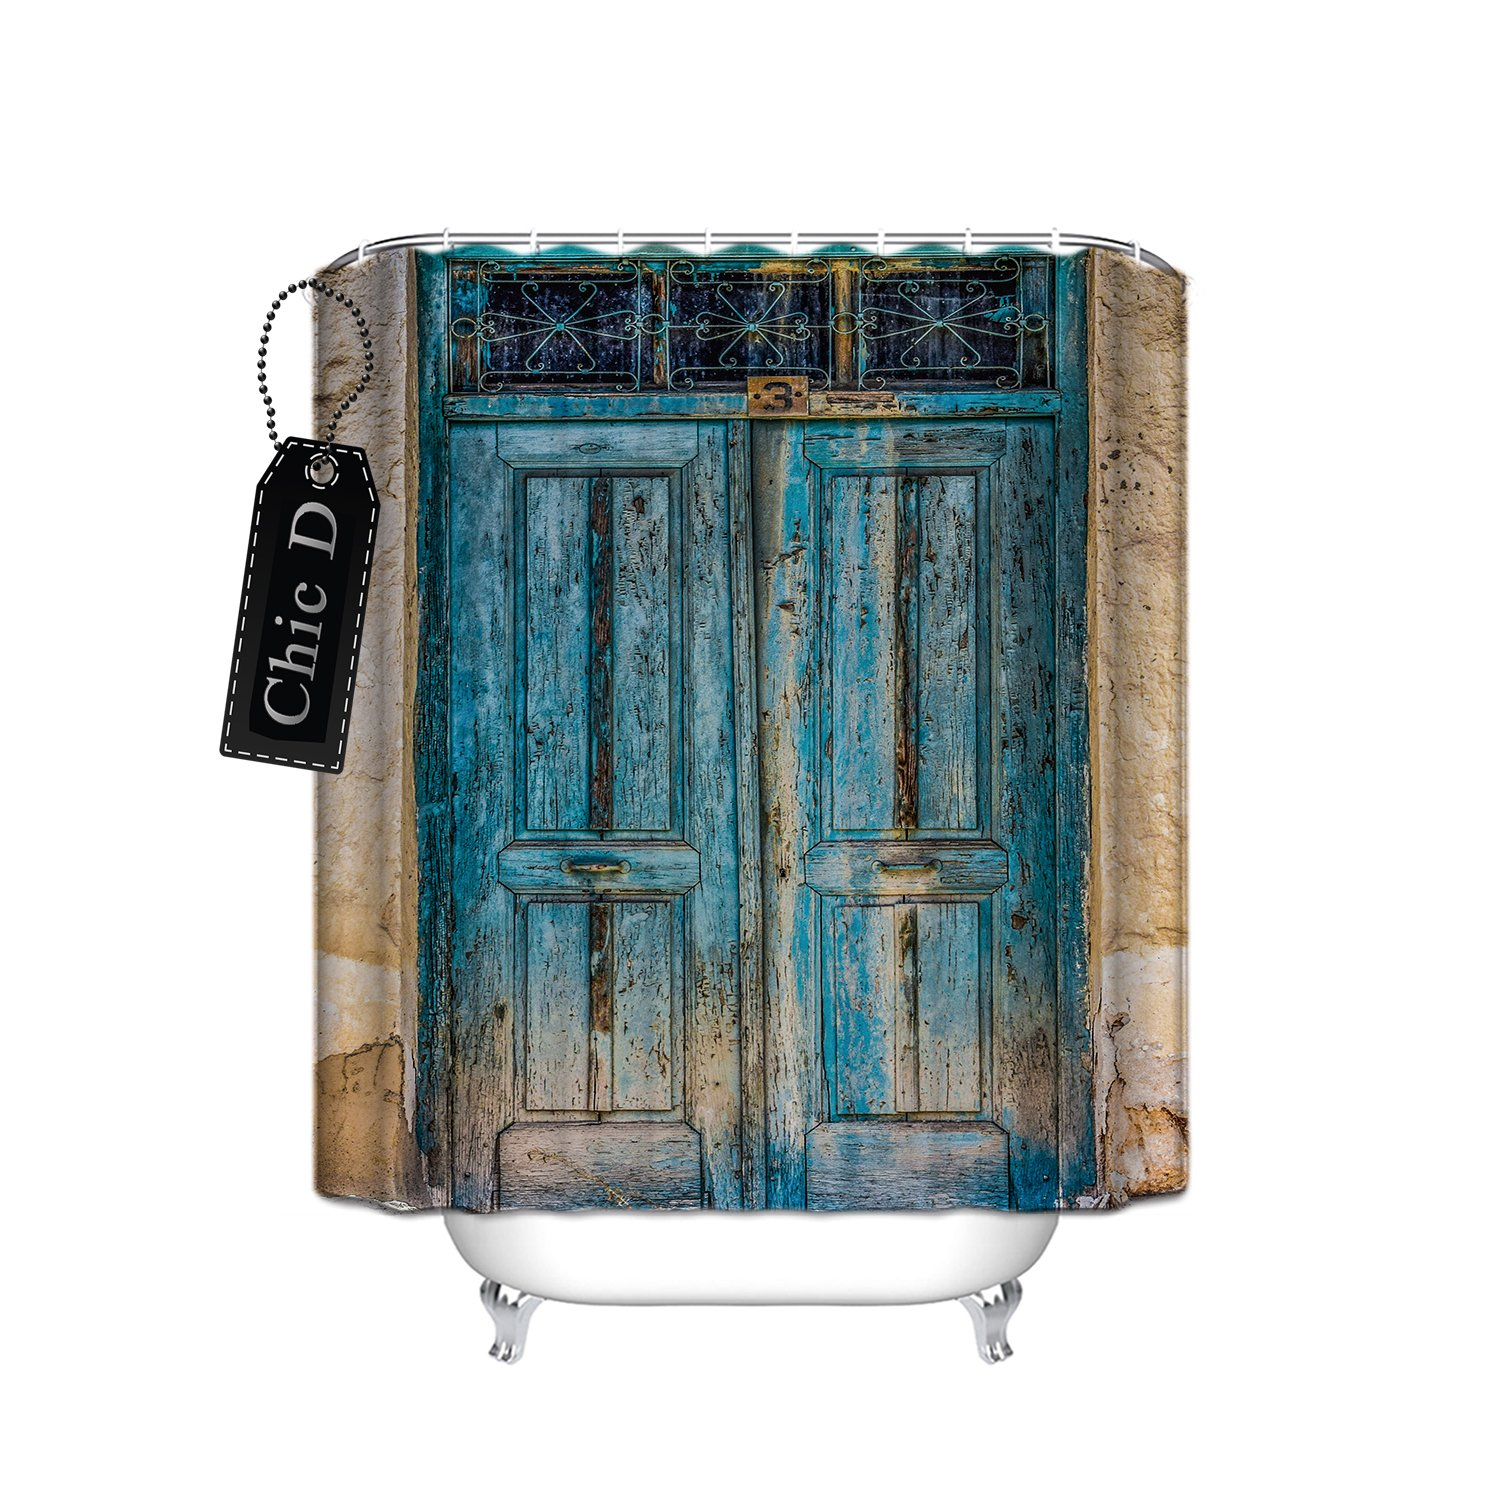 Rustic Country Barn Wood Door Waterproof Fabric Extra Long Shower Curtain 72 x 78 Inch -Antique Theme